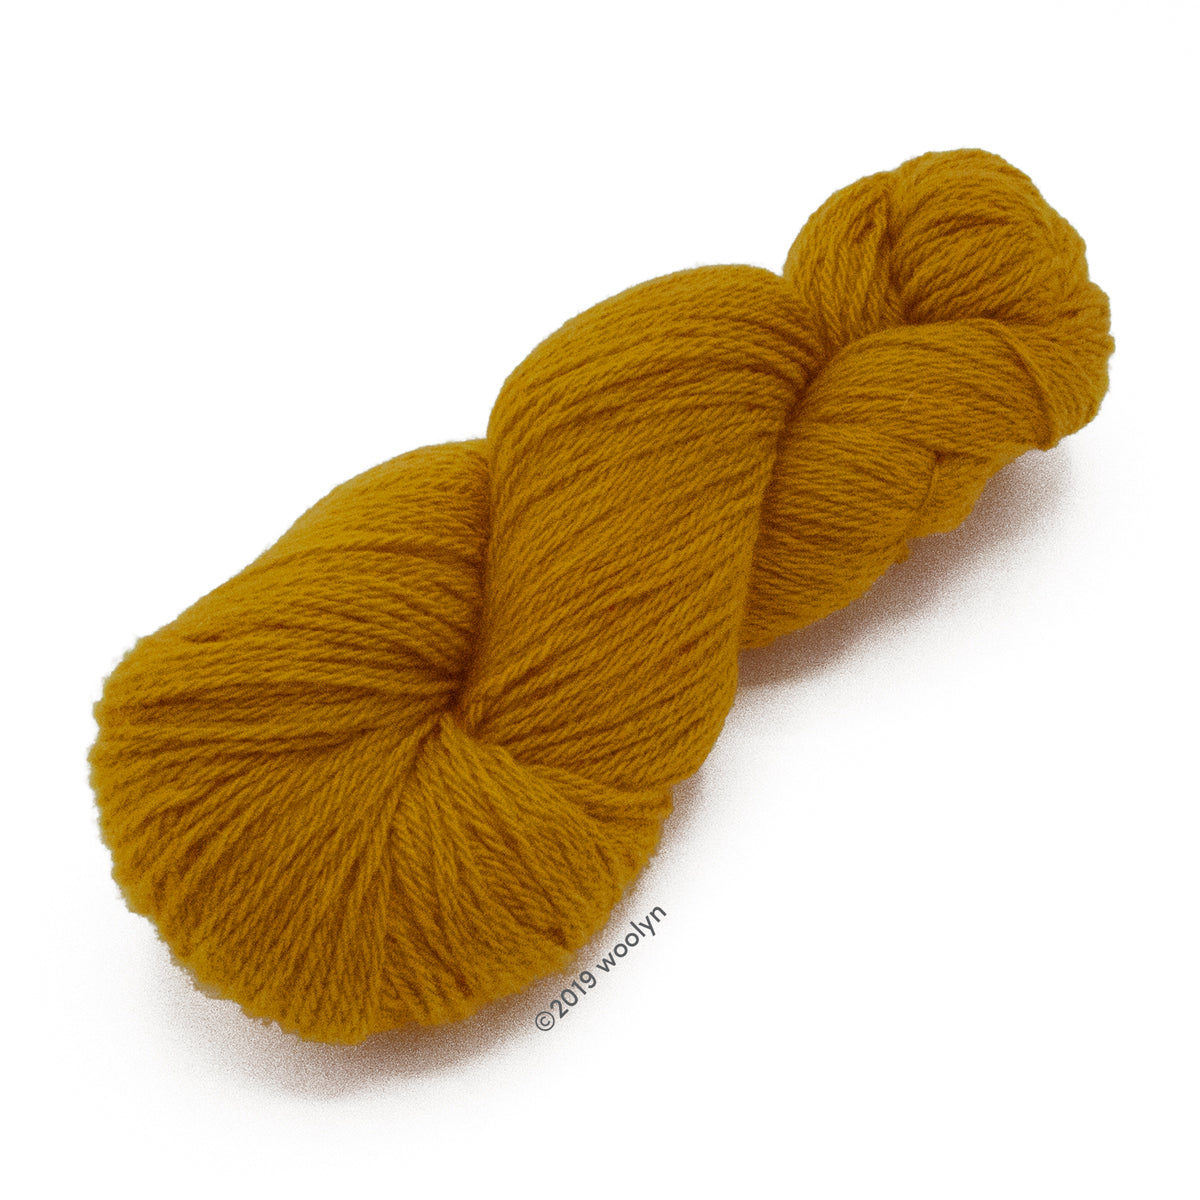 North Light Fibers Spring St